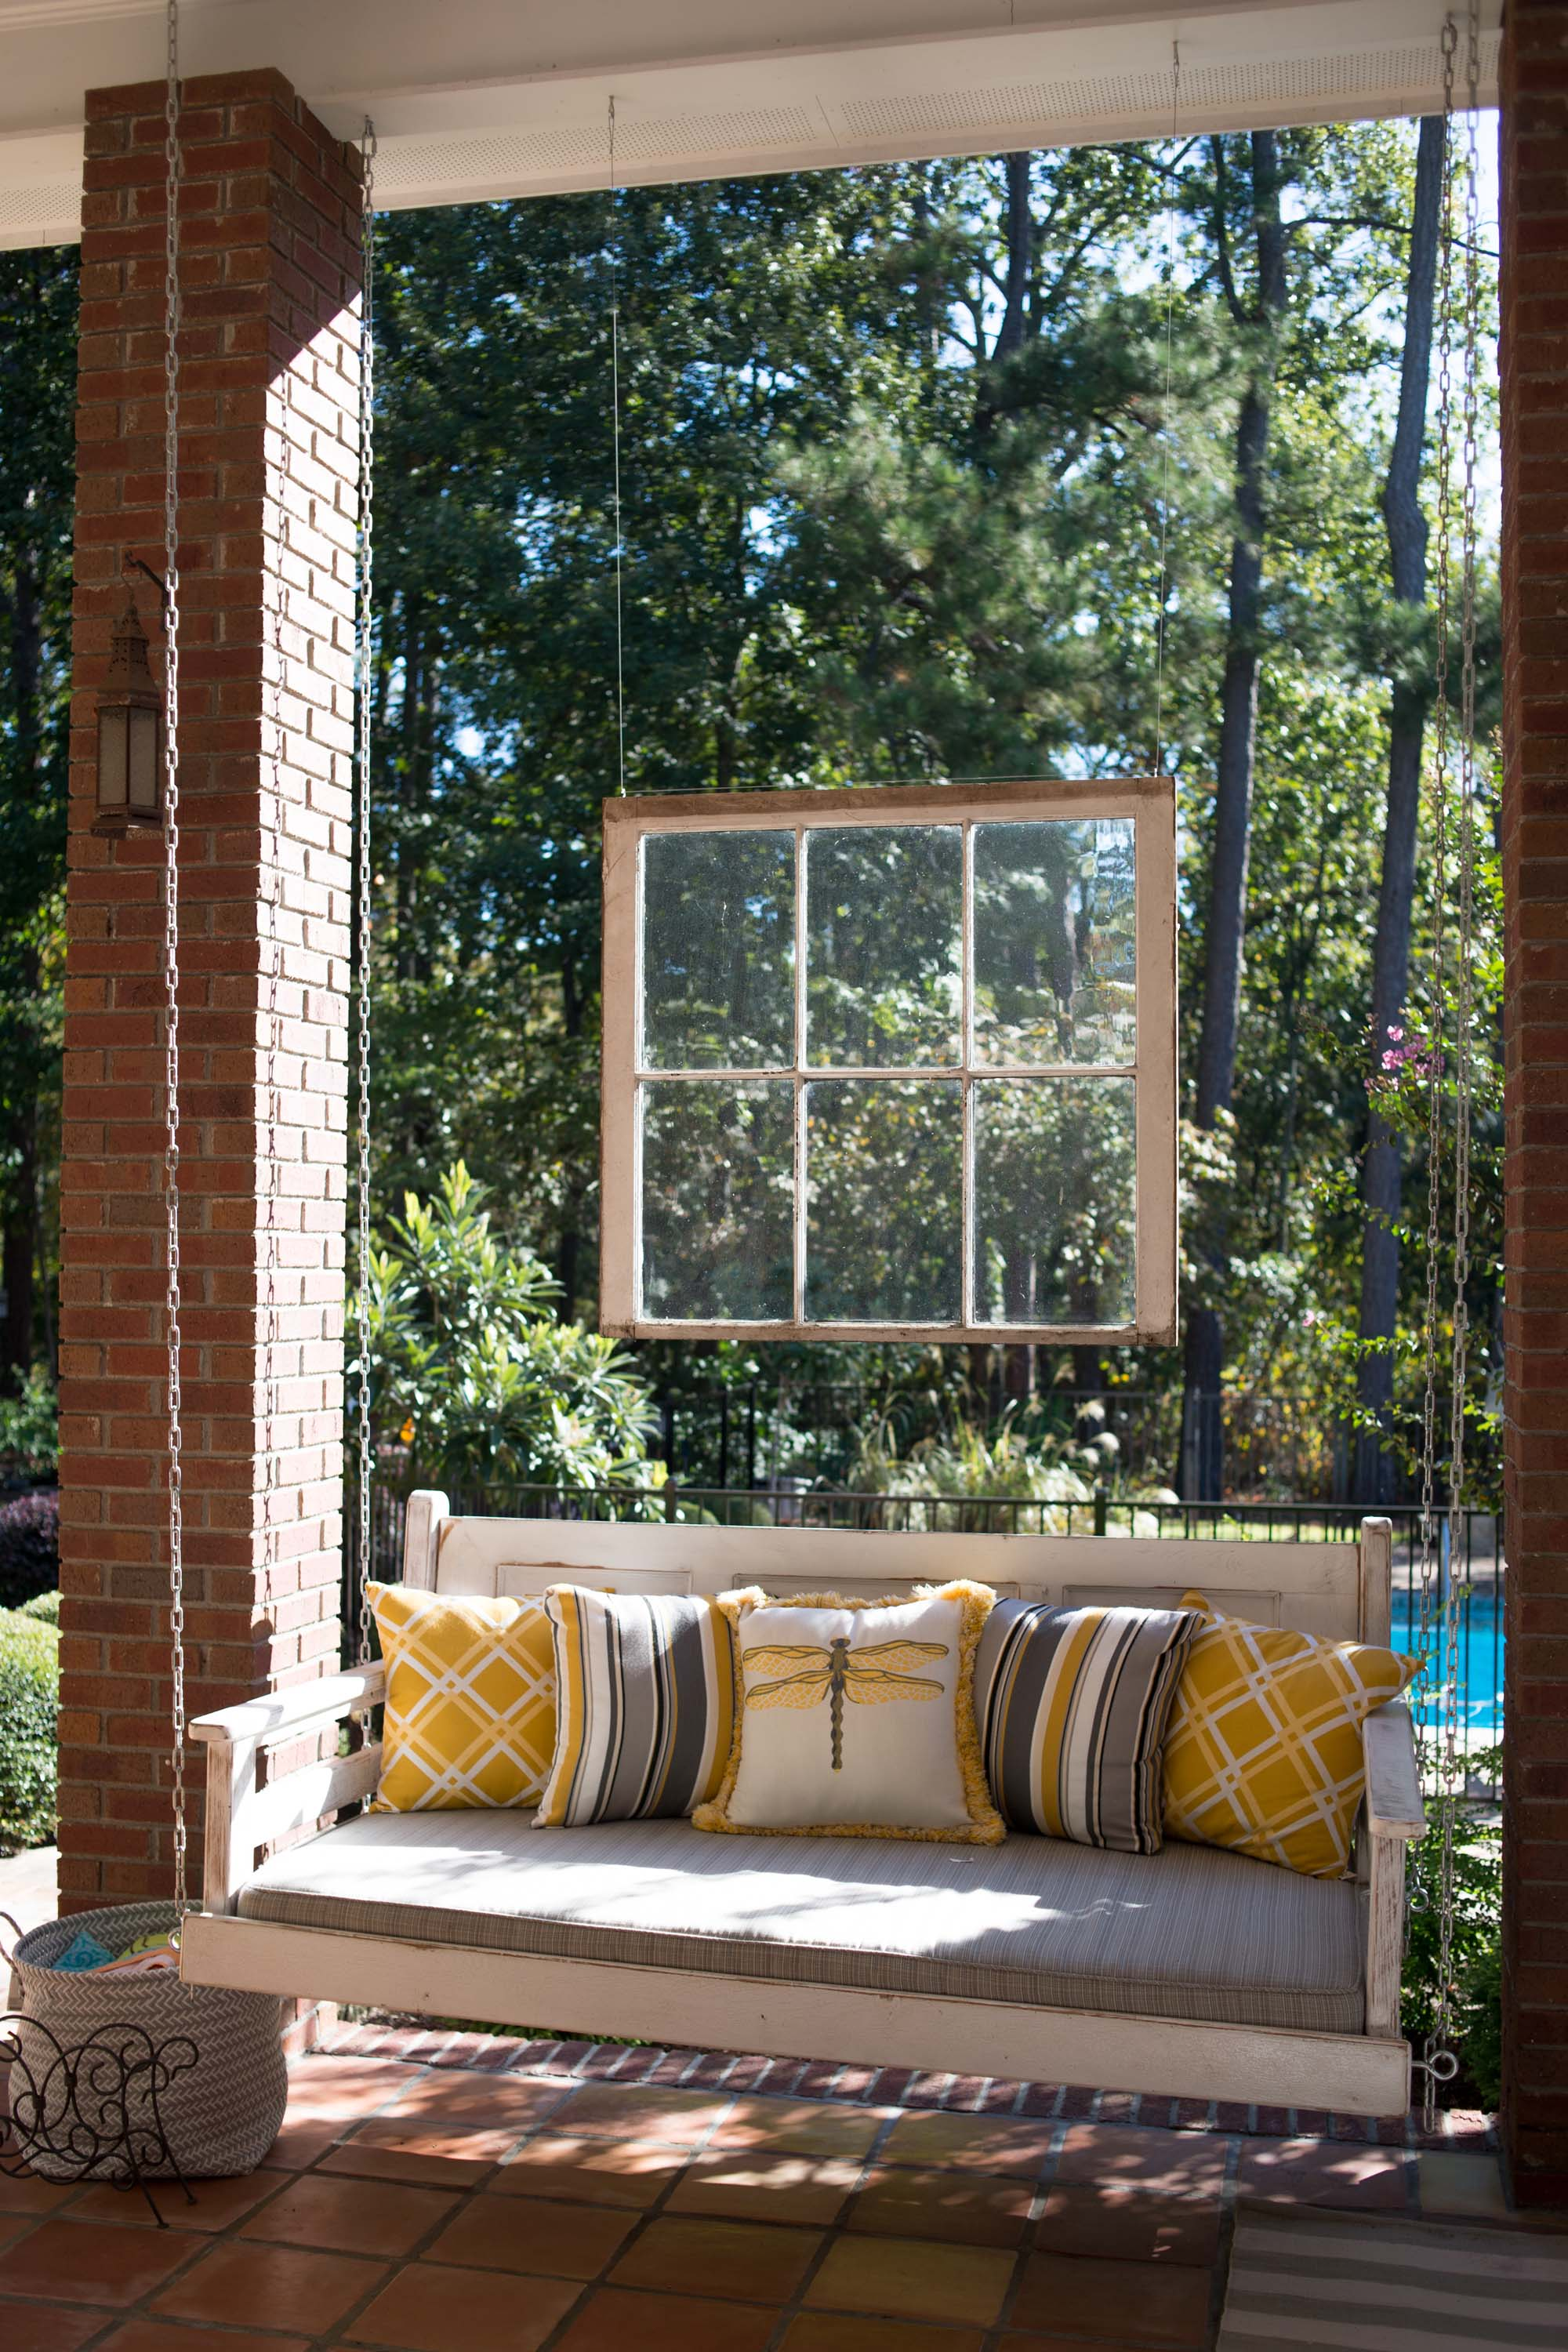 Outdoor patio with hanging  sofa and brown floor tiles